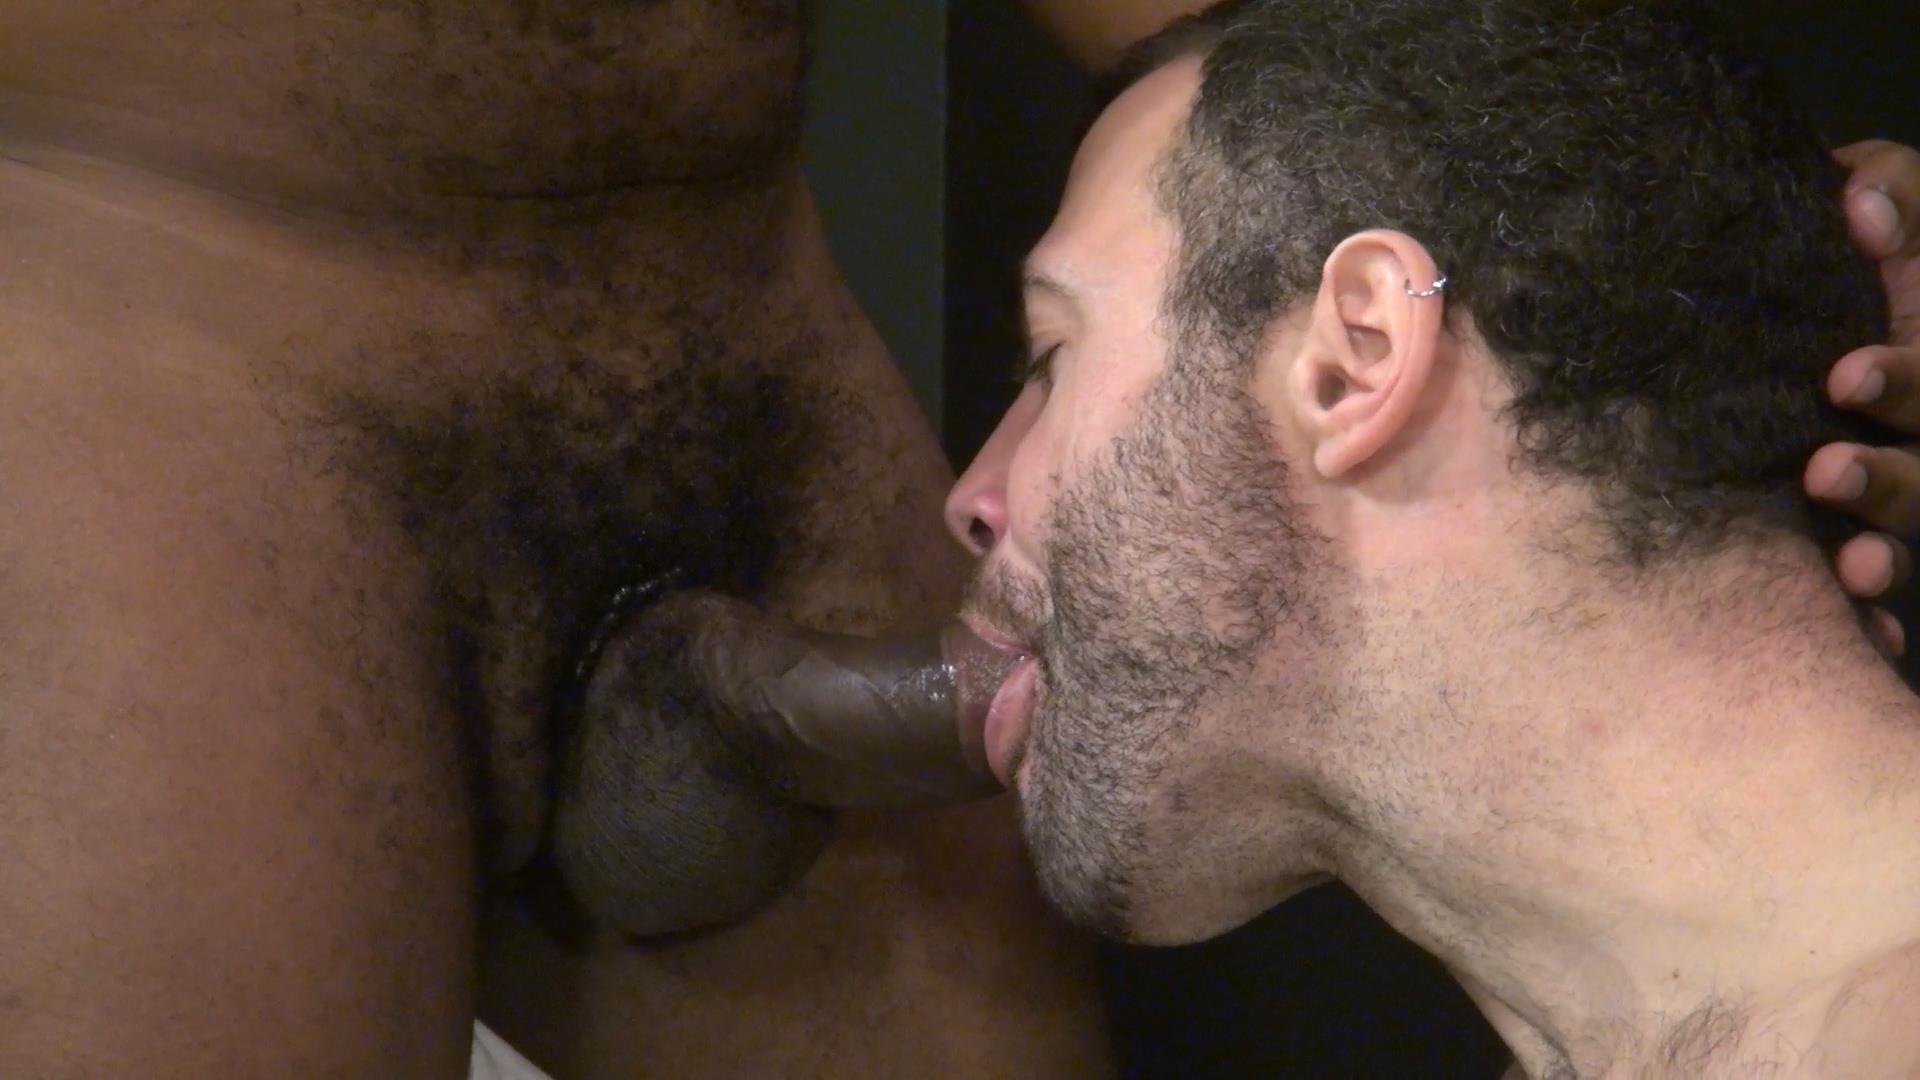 Nasty Interracial Gay Amateurs